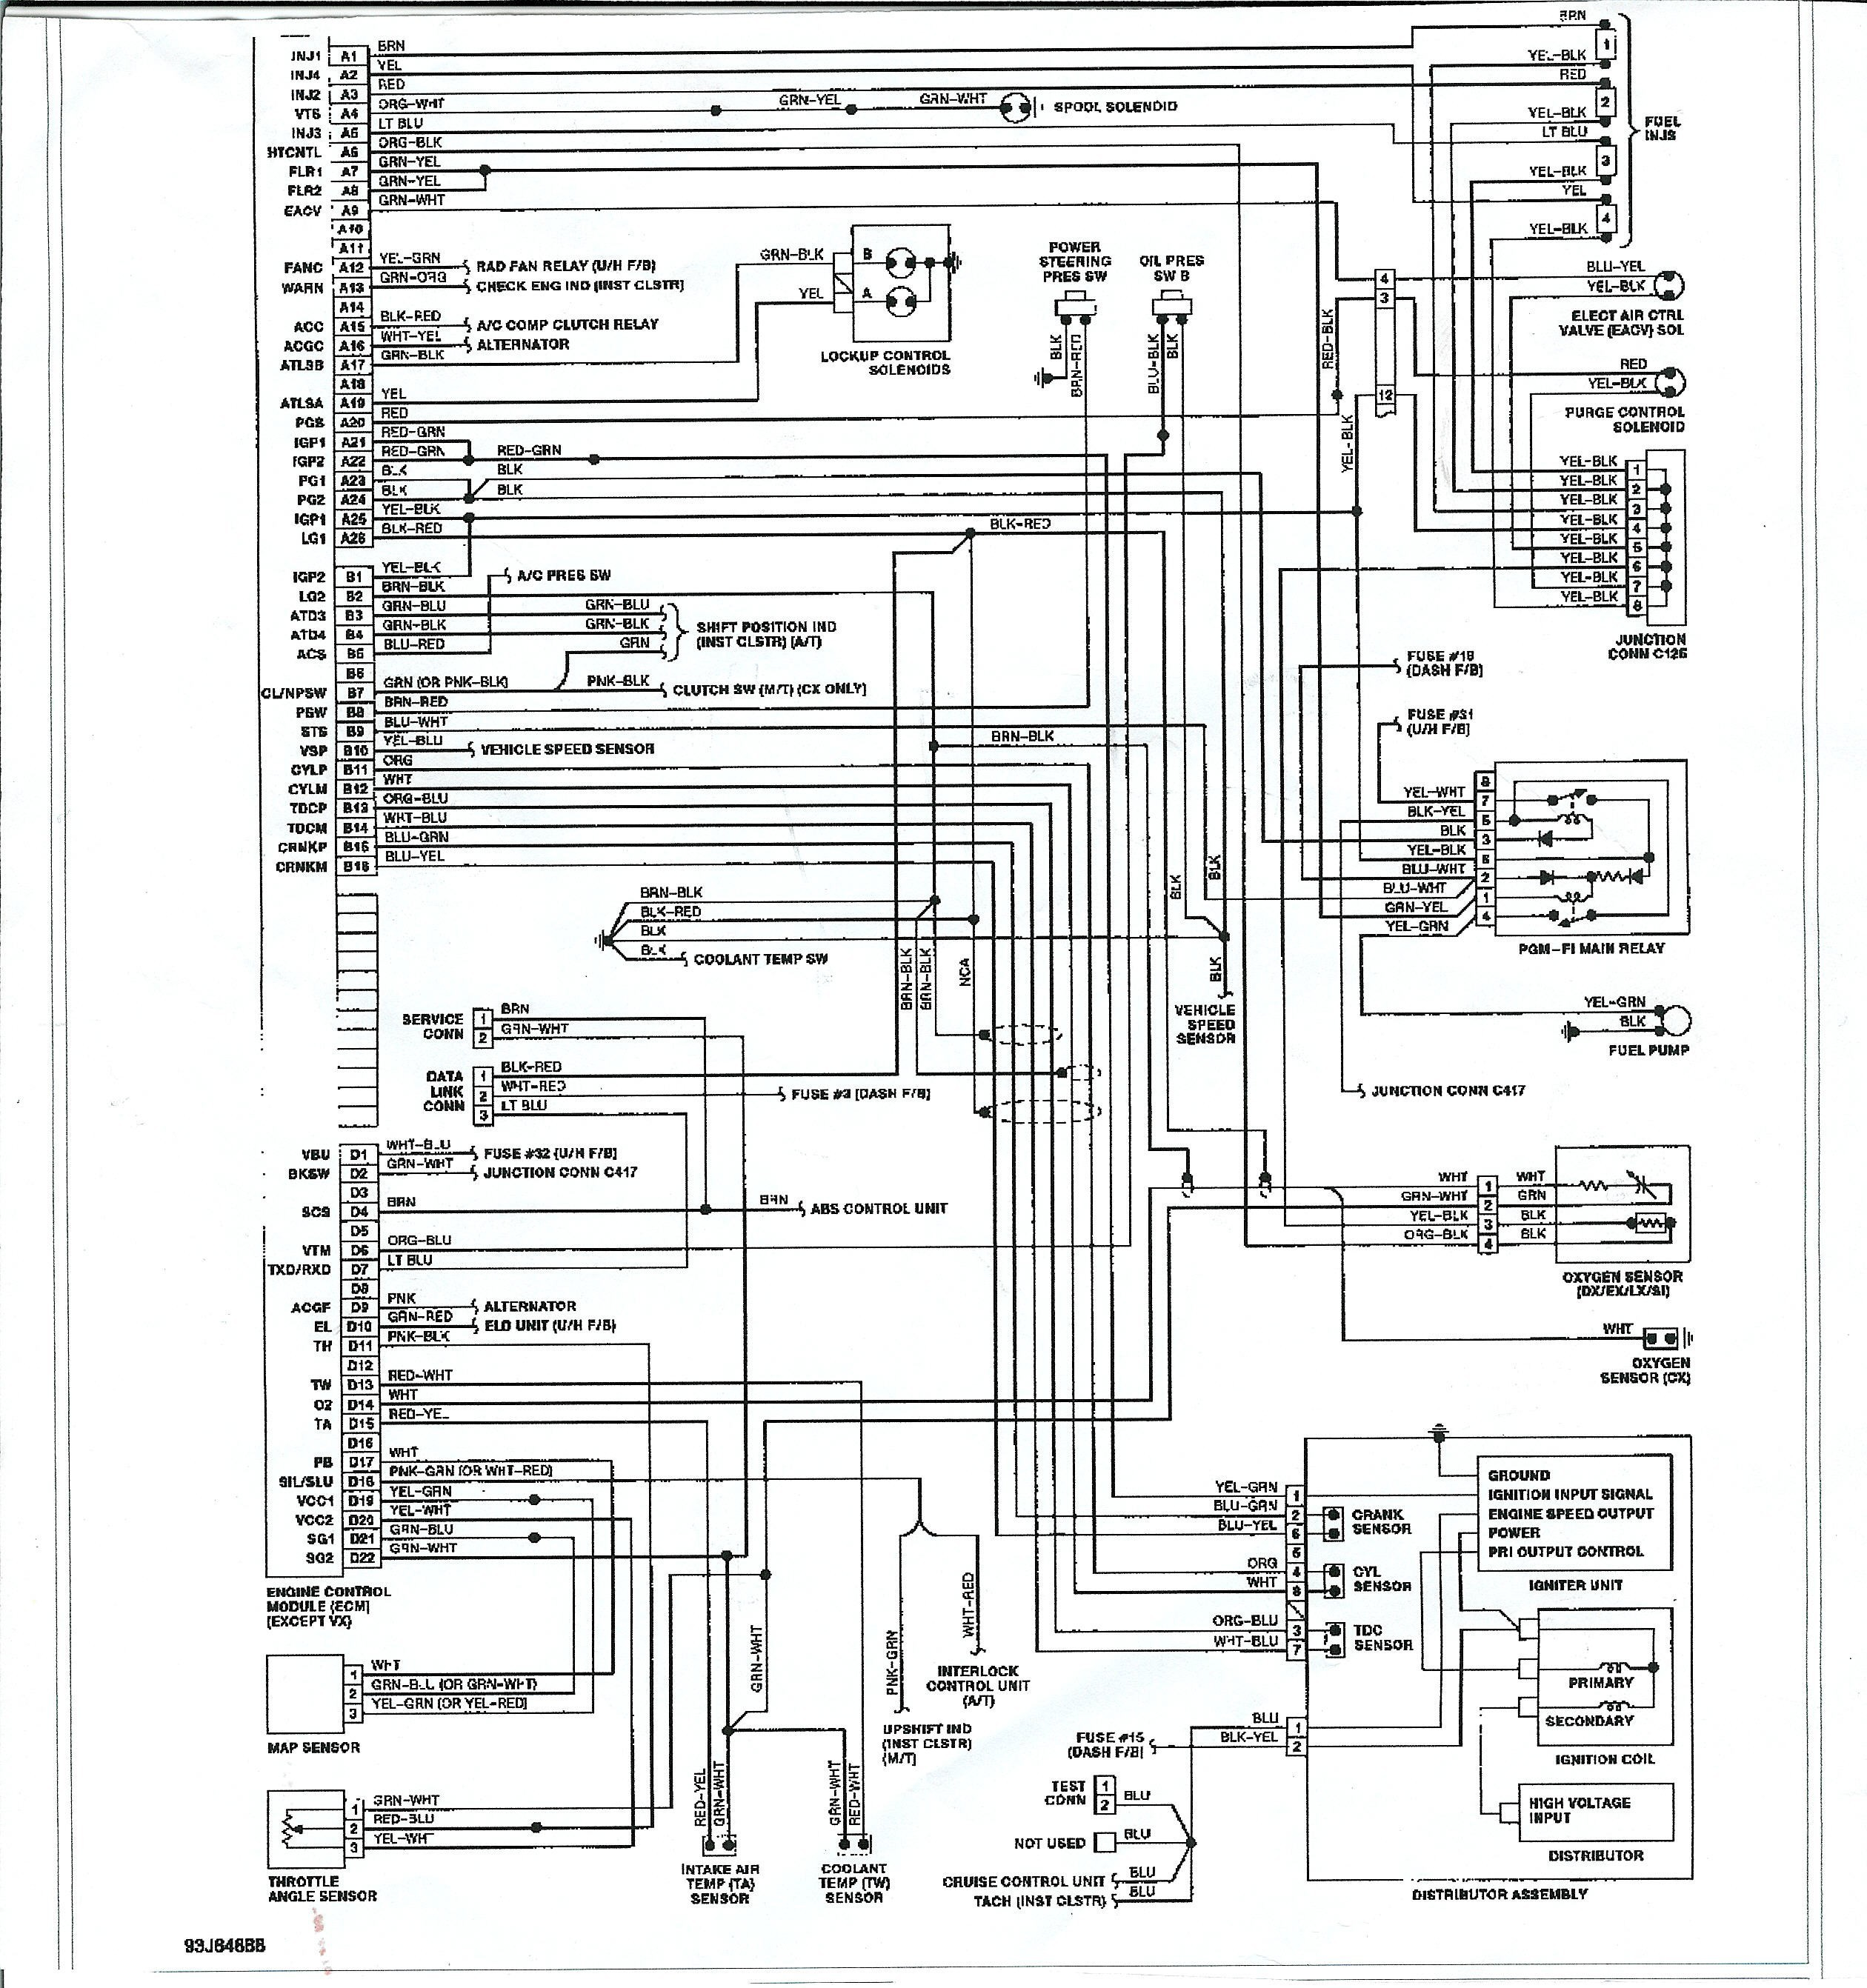 Honda Ac Wiring Diagram Valid 1995 Honda Accord Engine Diagram Awesome Wiring Diagram Honda Civic